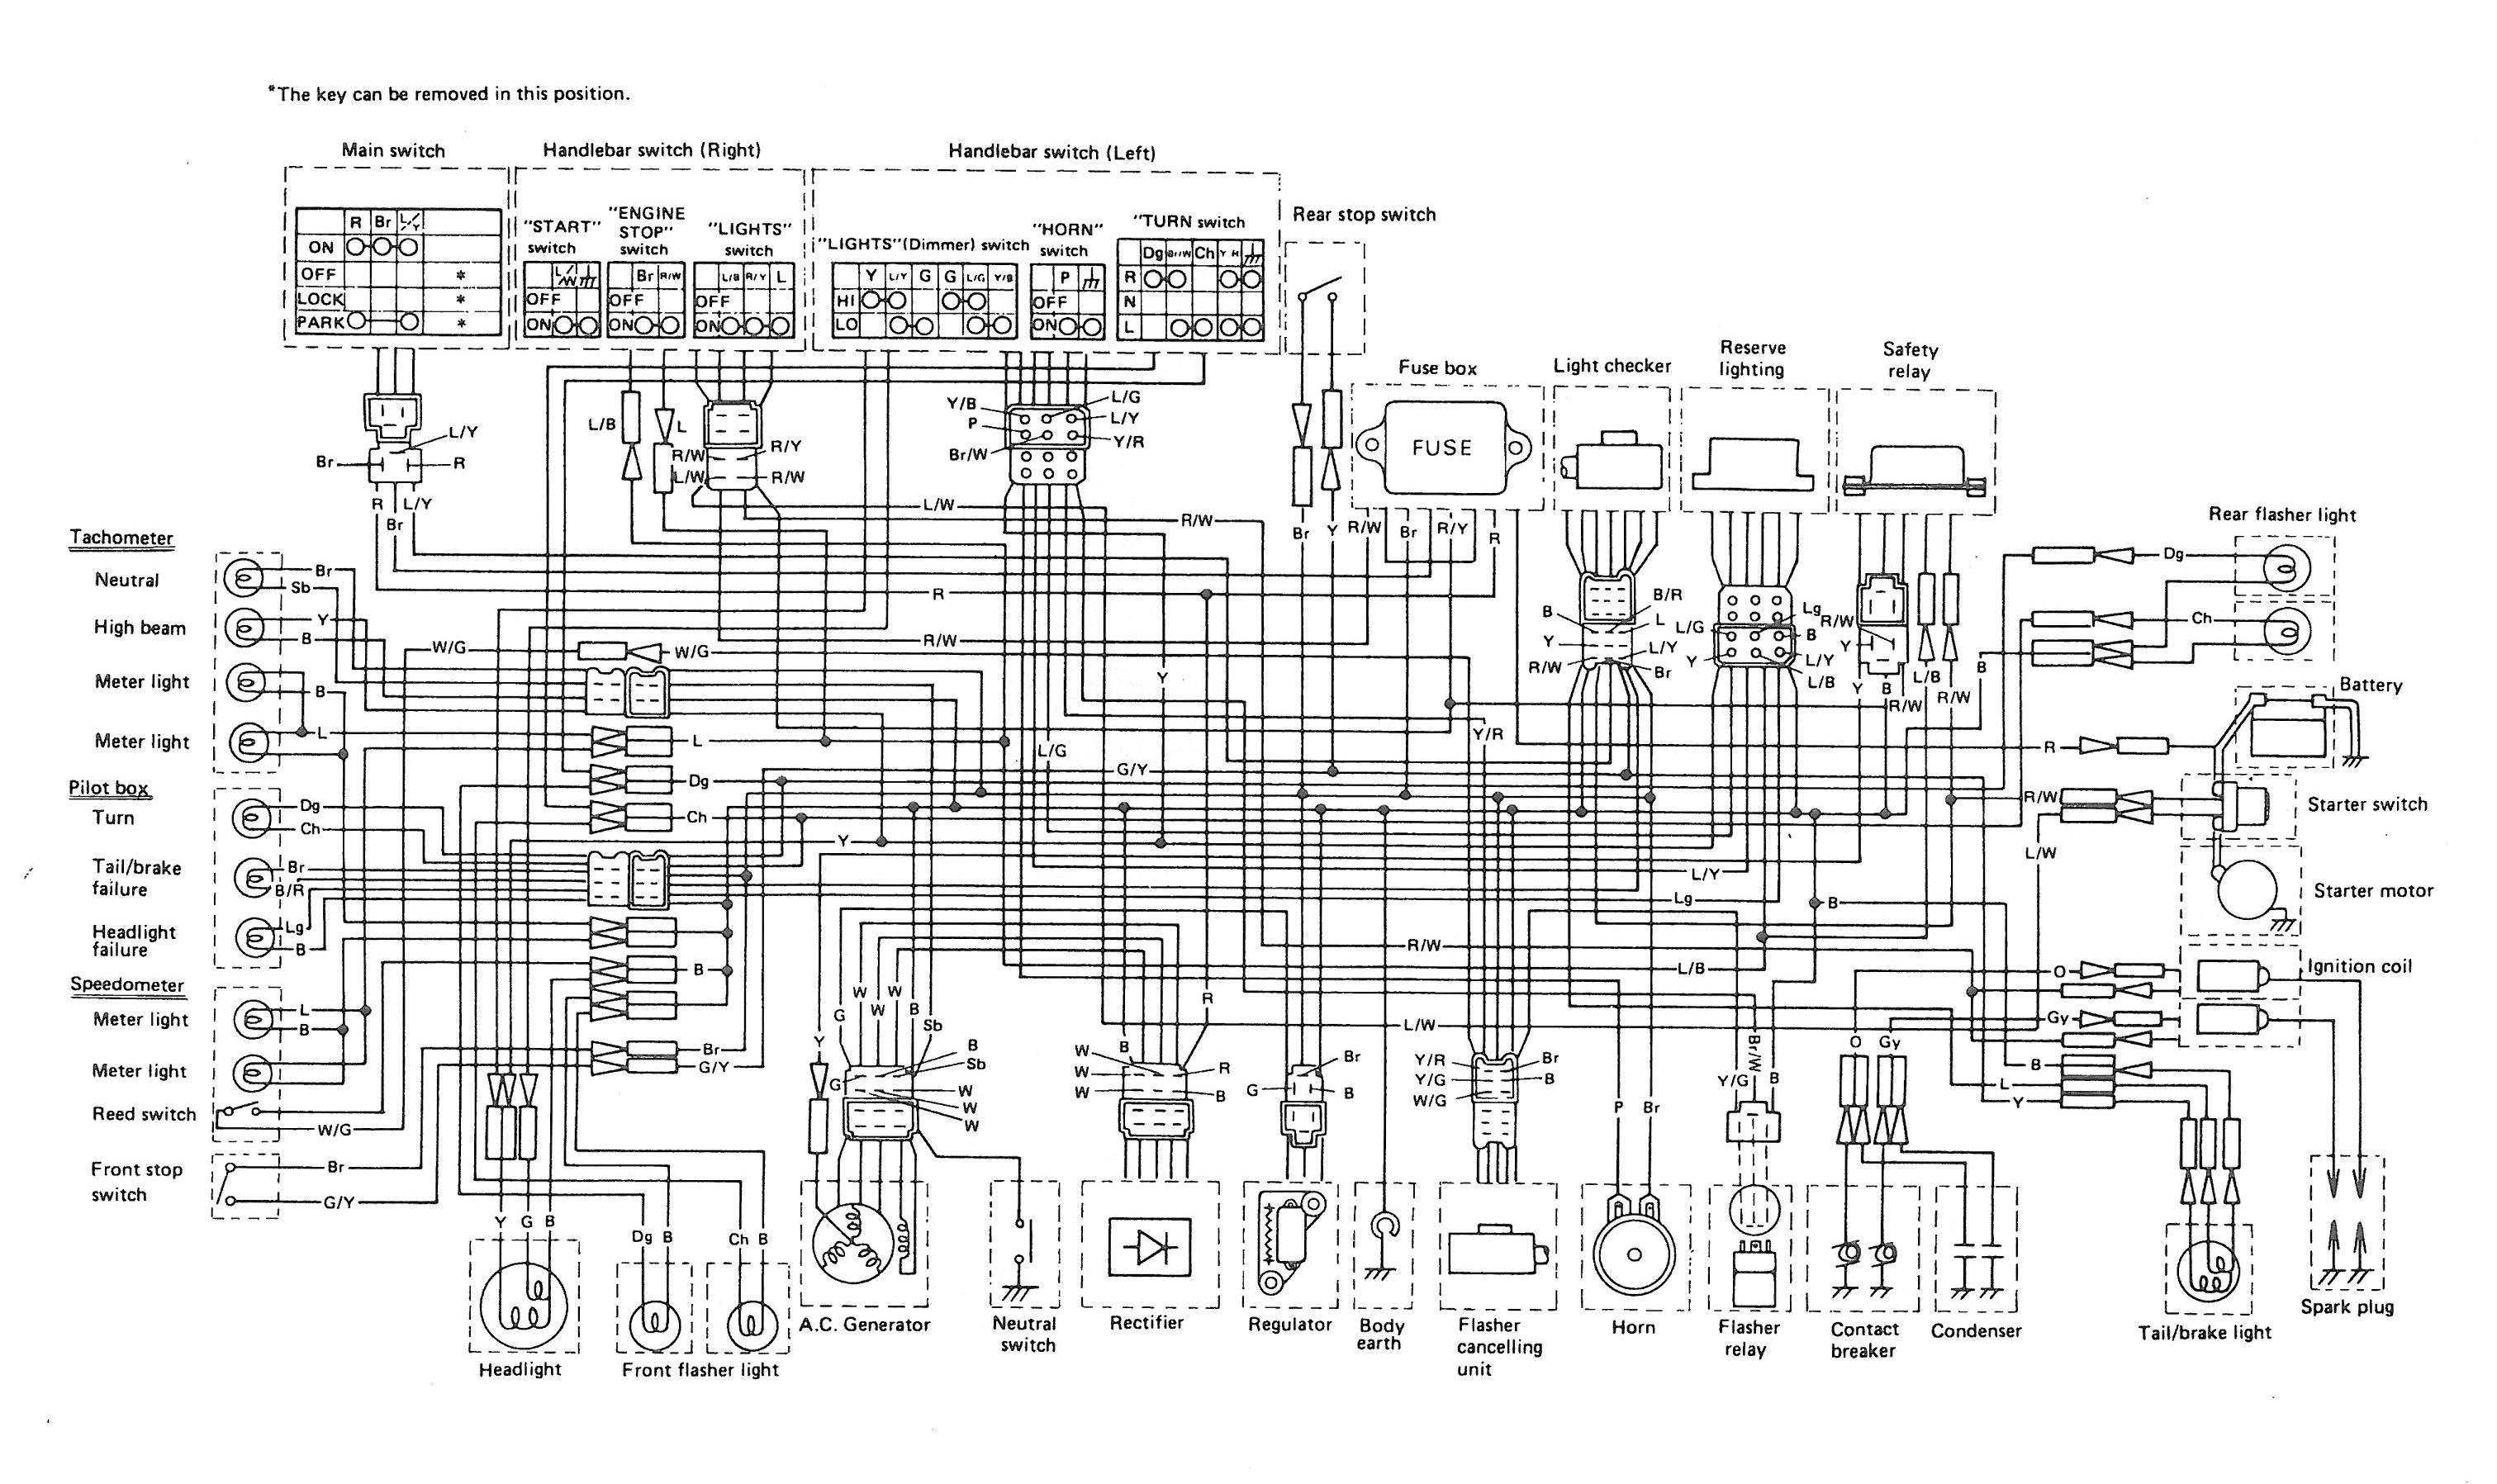 78 xsse wiring 6 1 1978 thexscafe yamaha xs 400 wiring diagram at panicattacktreatment.co